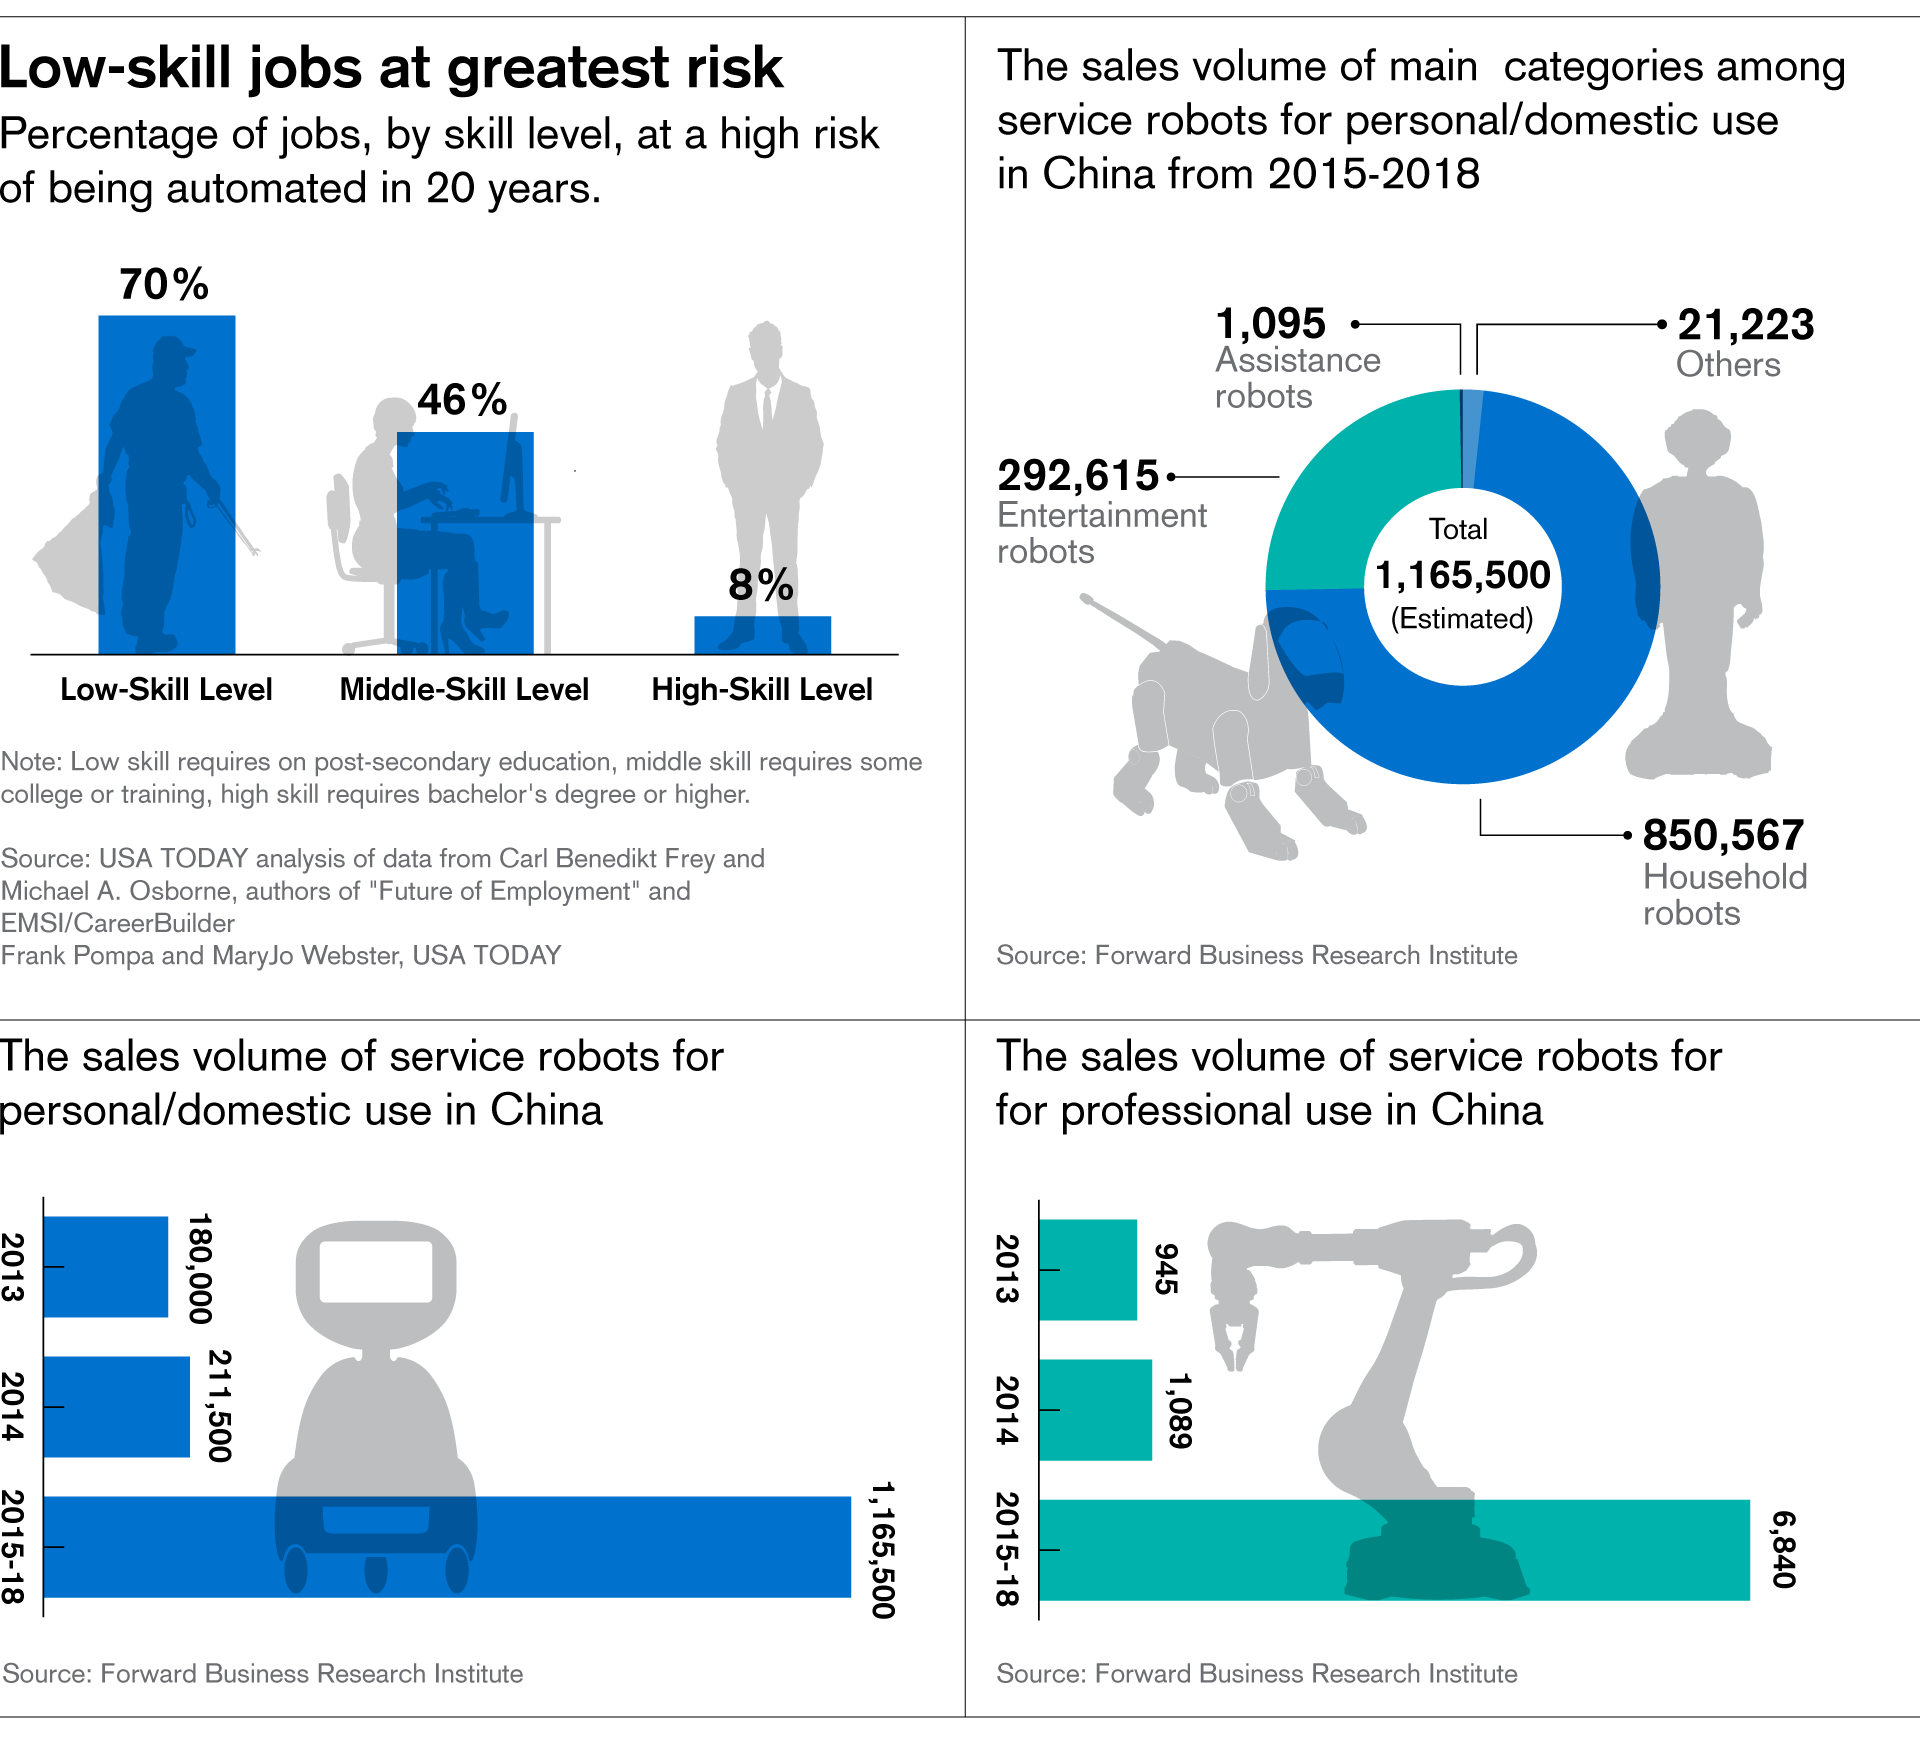 Low-skill job at greatest risk